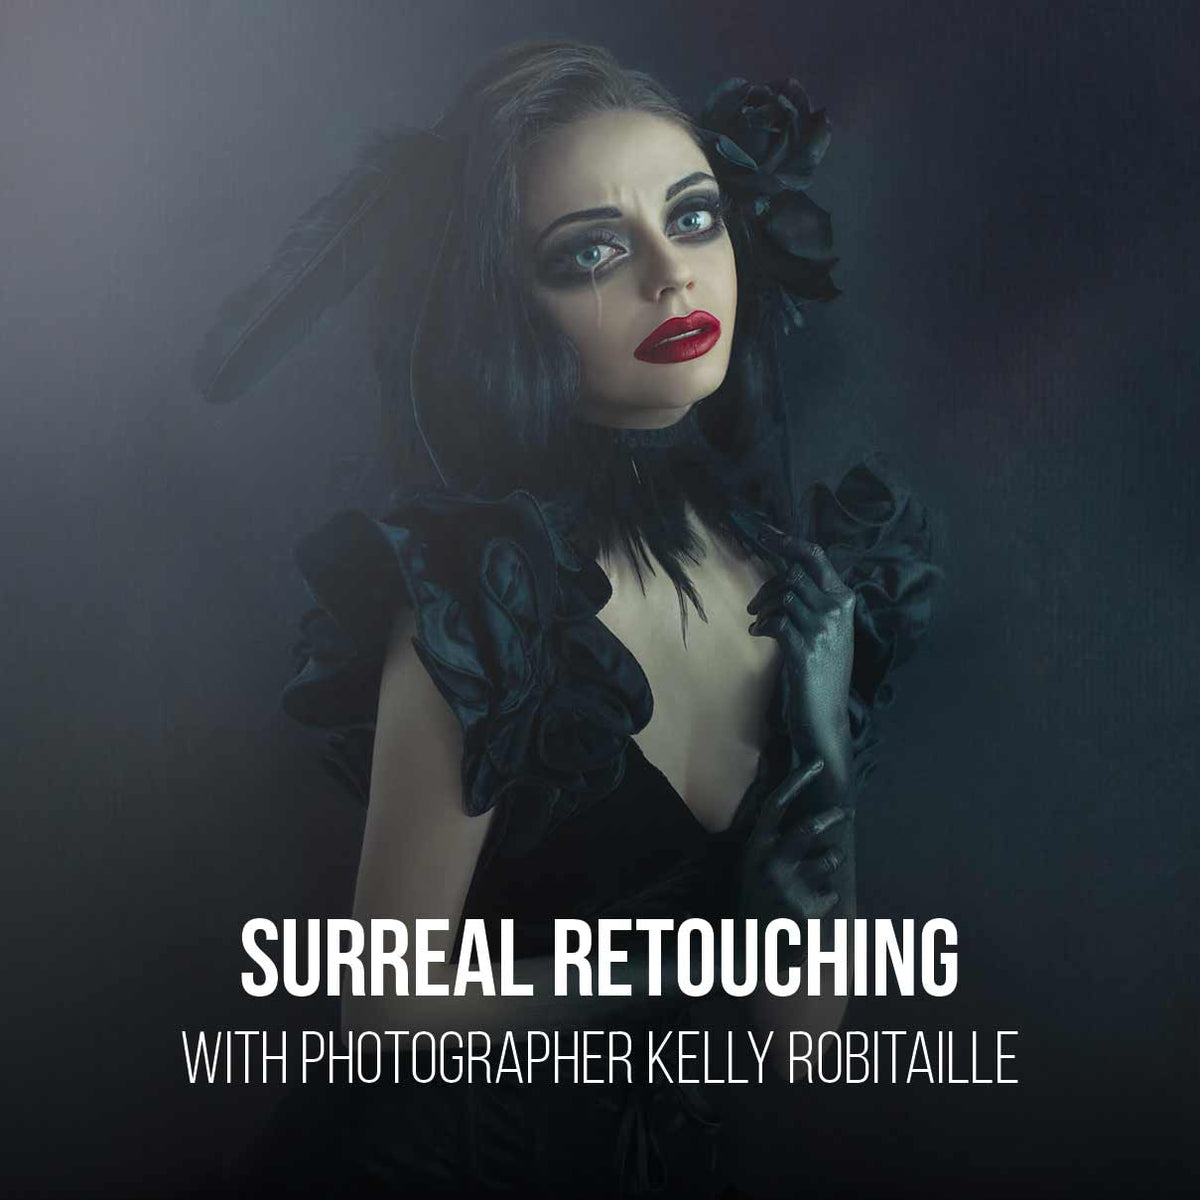 Surreal Retouching In Portraiture